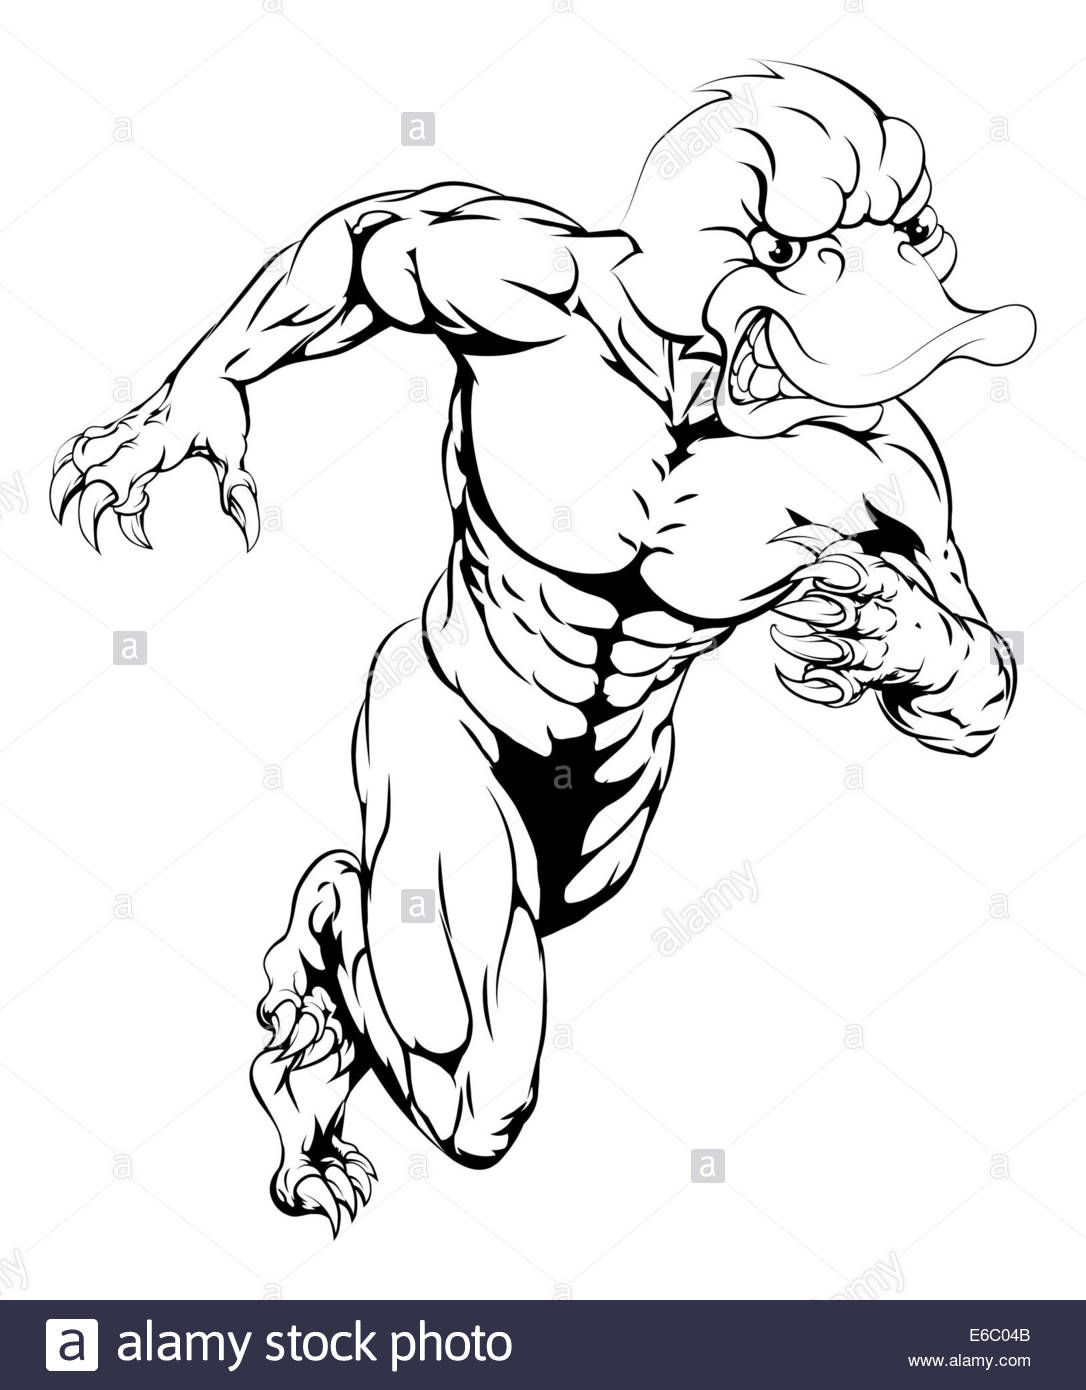 1086x1390 An Aggressive Muscular Duck Sports Mascot Character Charging Stock